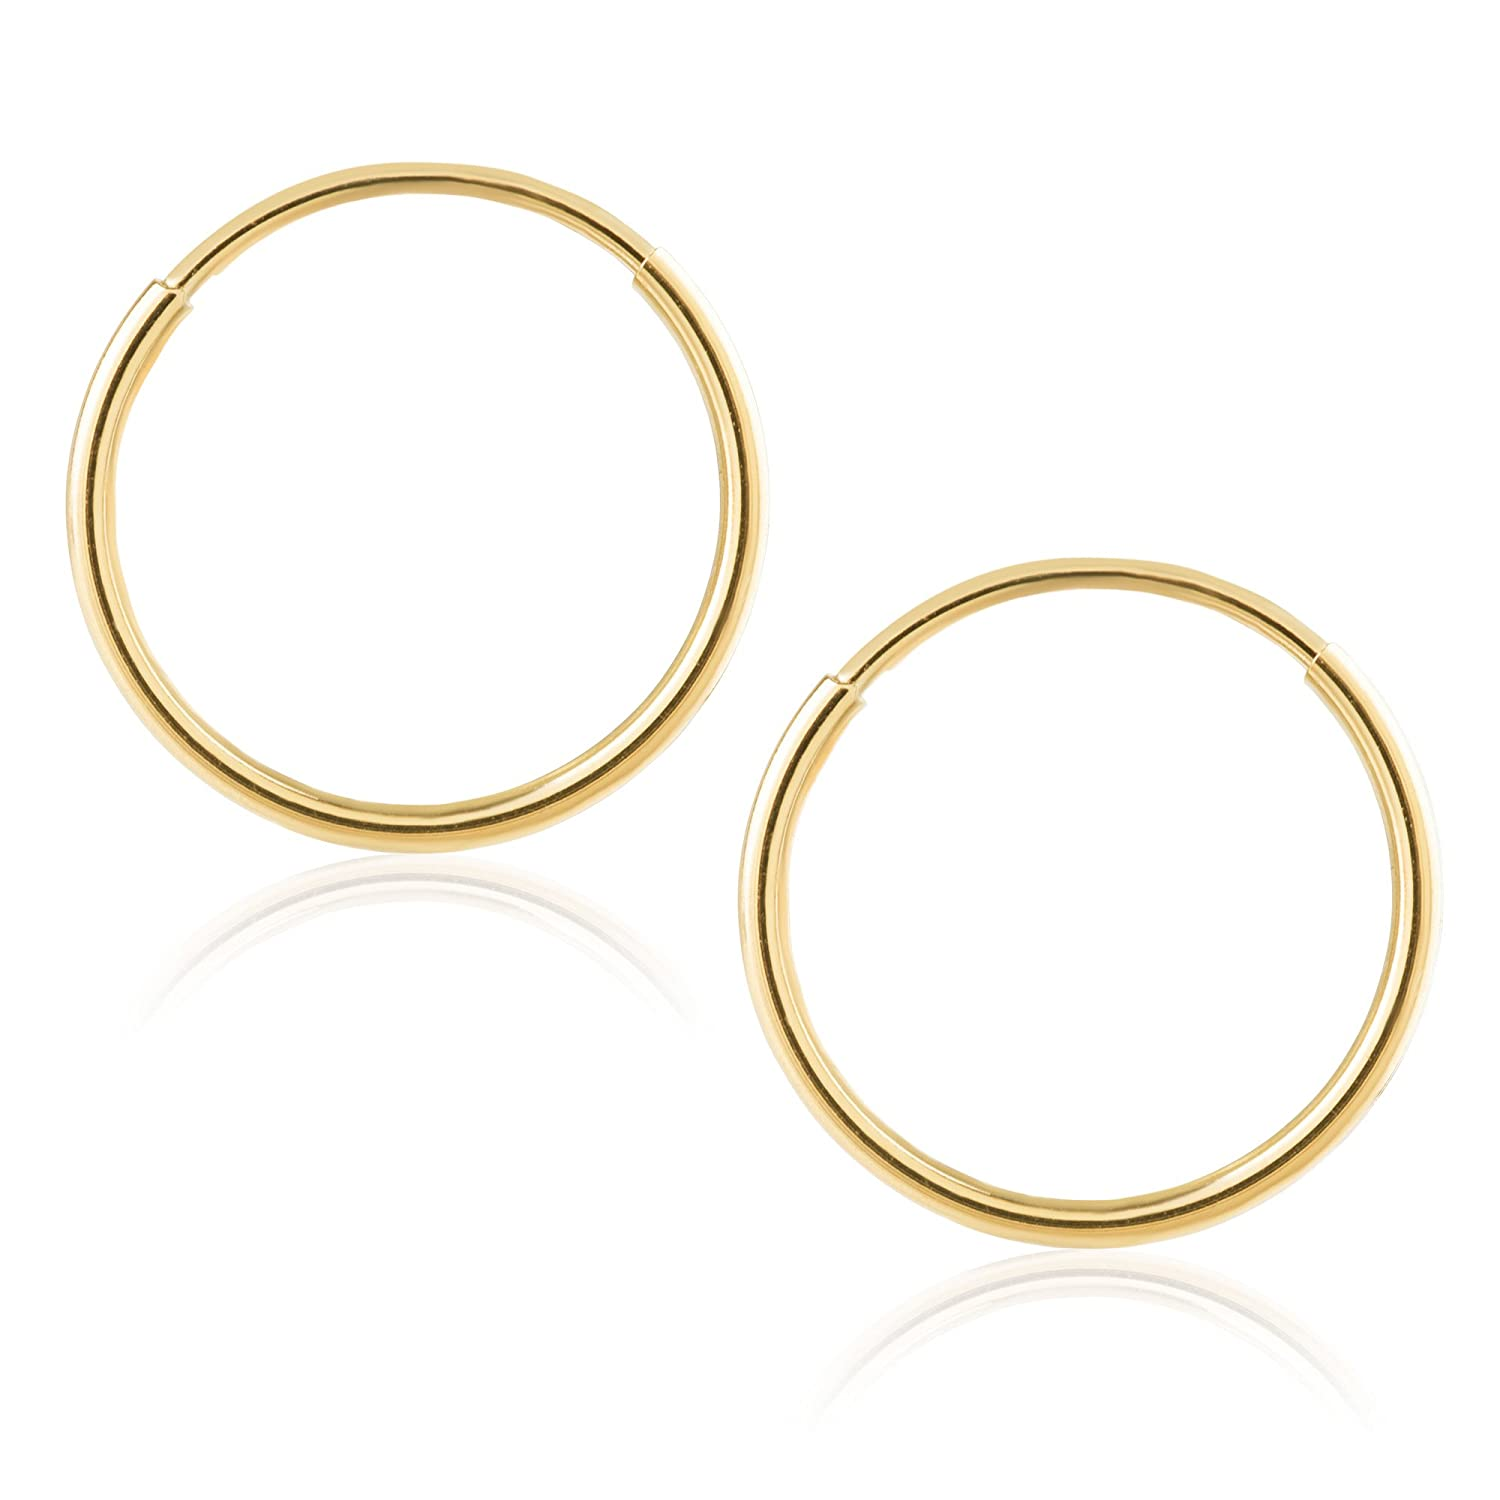 b23bcce558026 14k Yellow Gold Women's Endless Tube Hoop Earrings 1mm-1.5mm Thick 10mm -  60mm Diameter